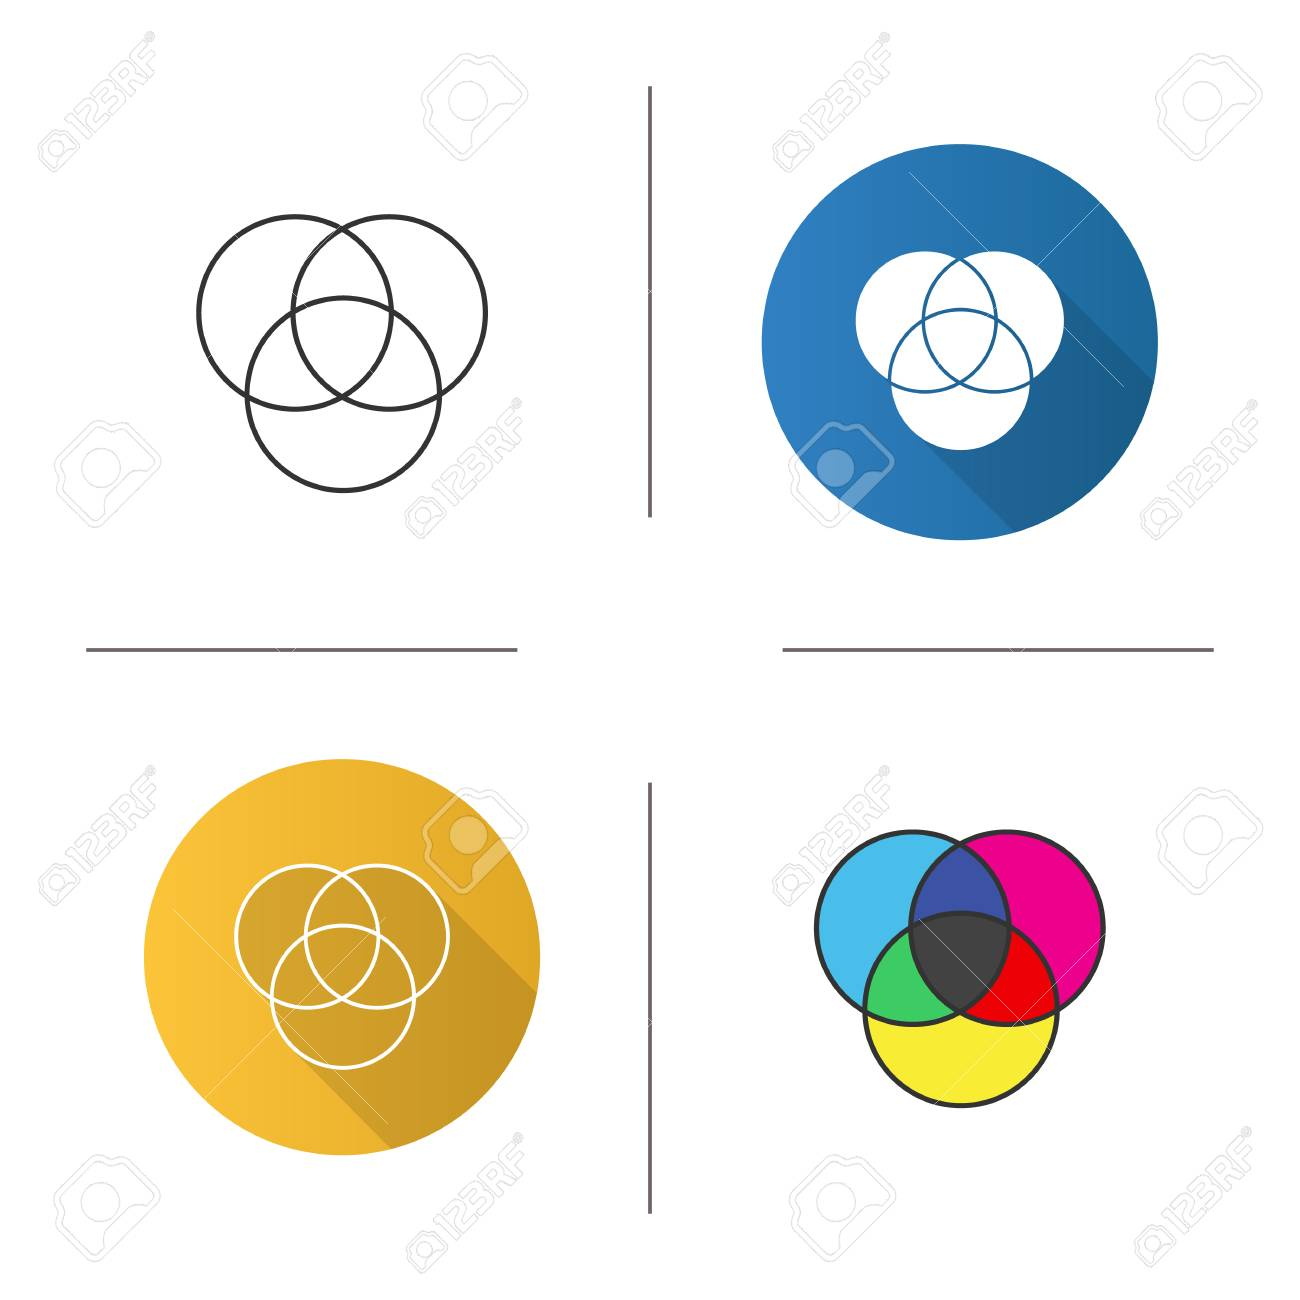 cmyk or rgb color circles icon  venn diagram  overlapping circles  flat  design,